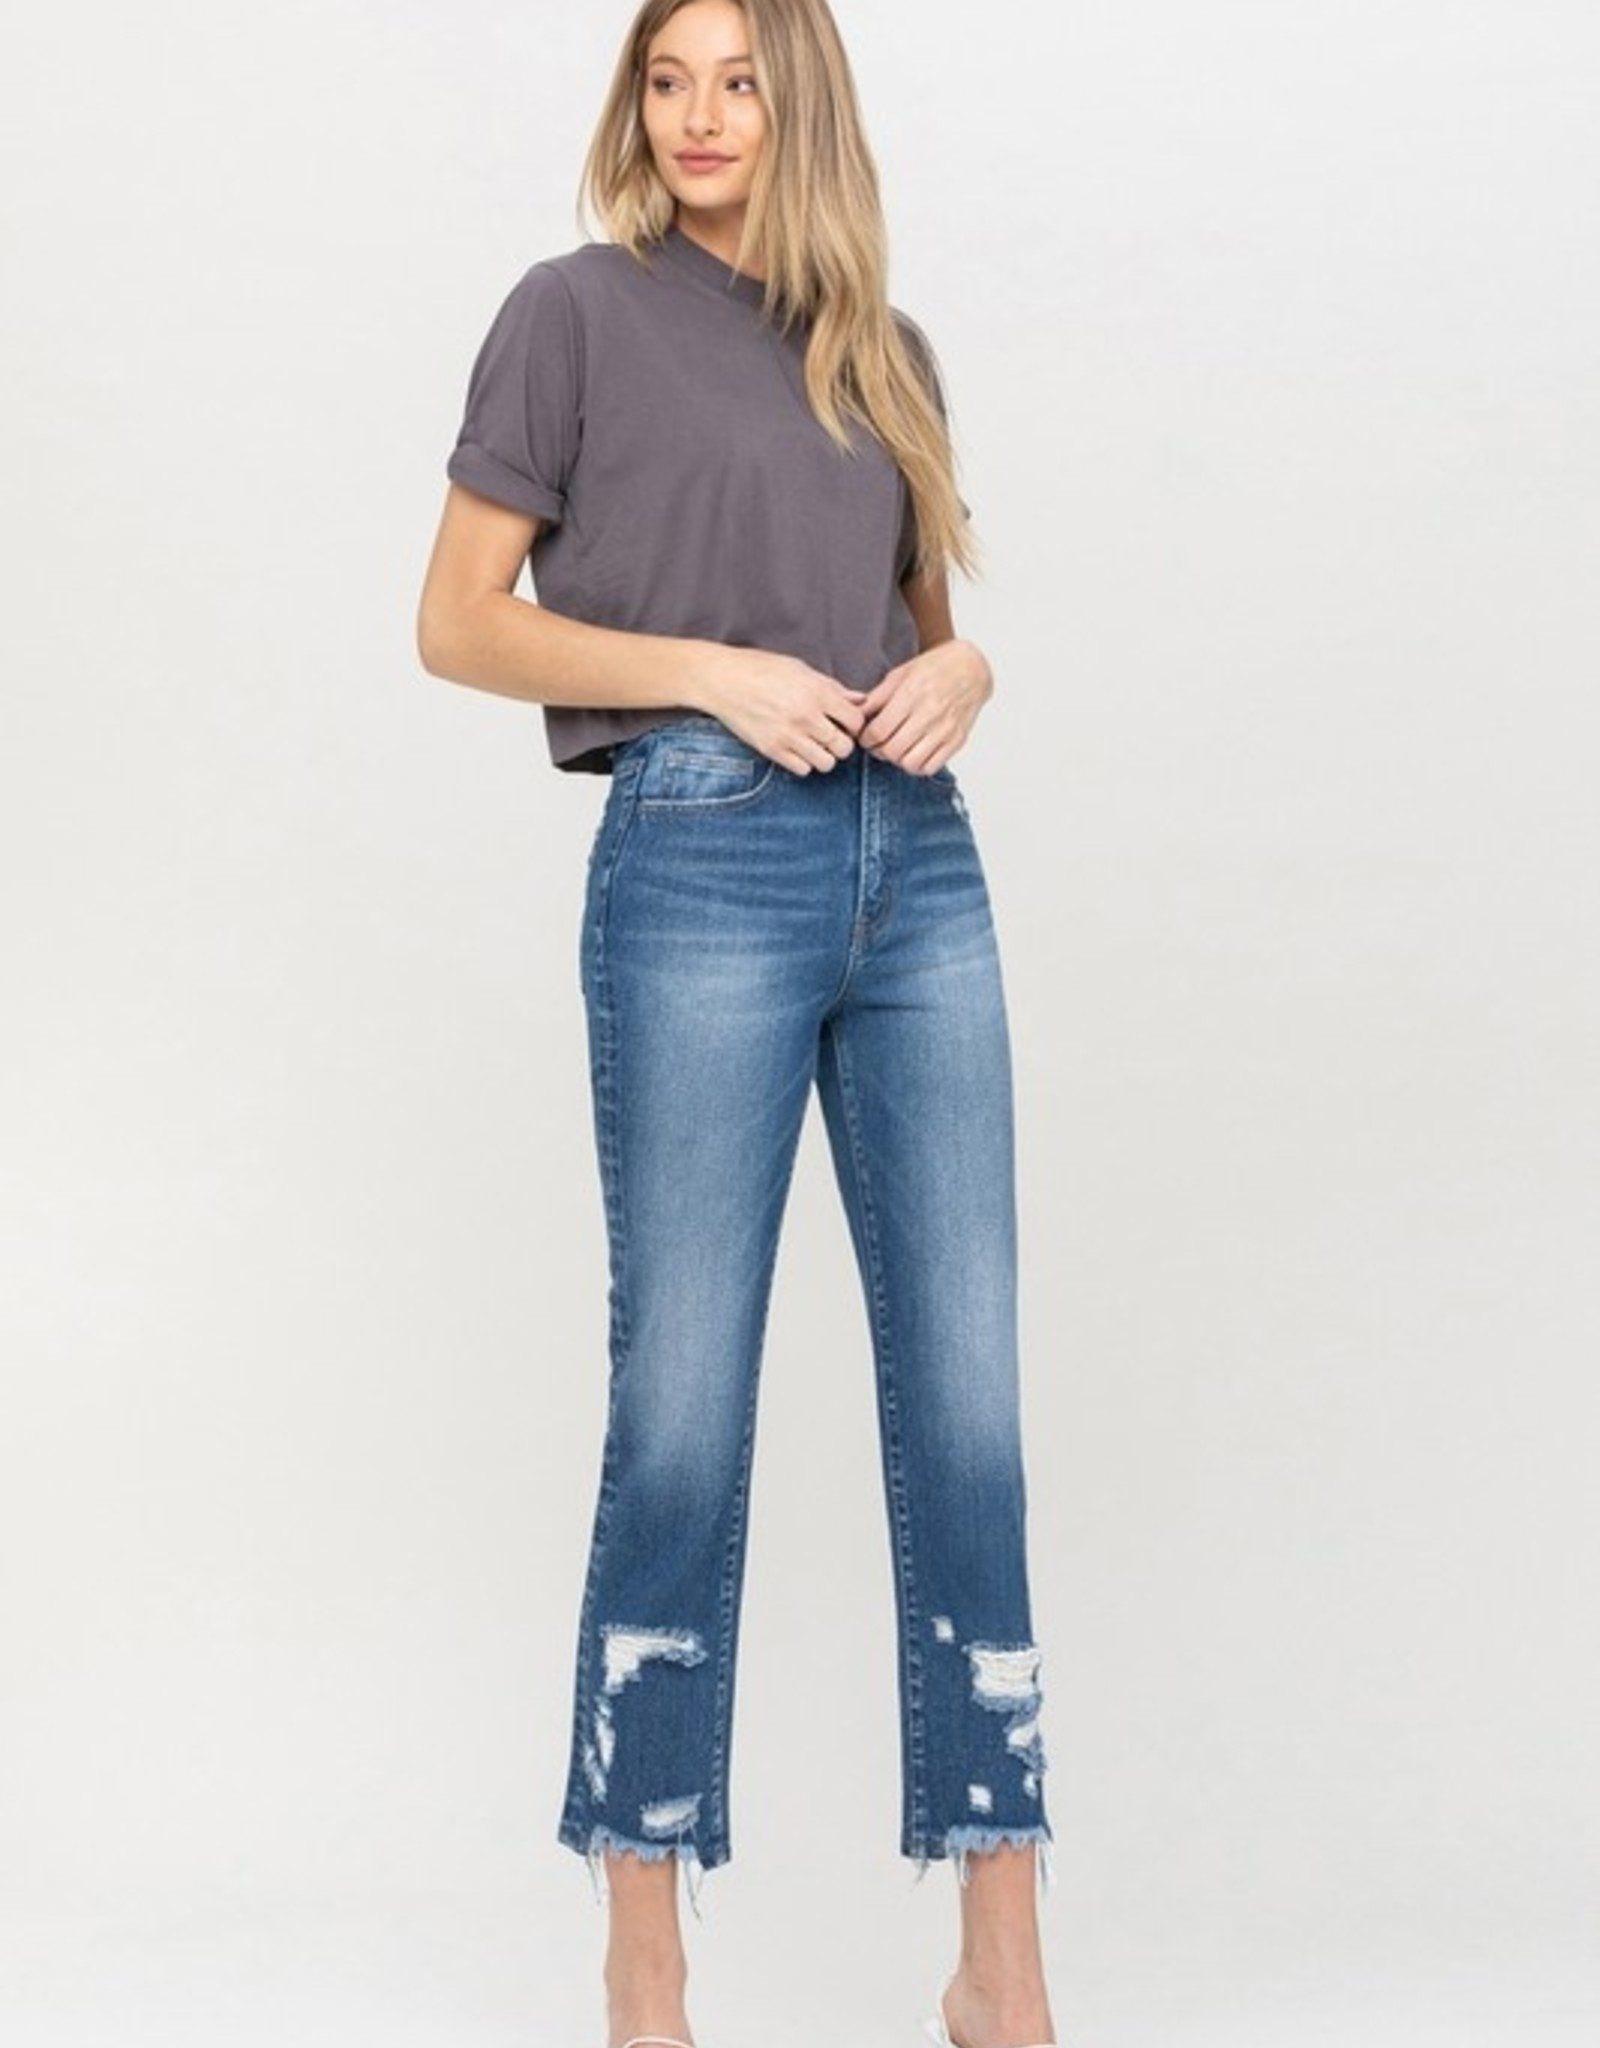 High waist distressed bottom jean